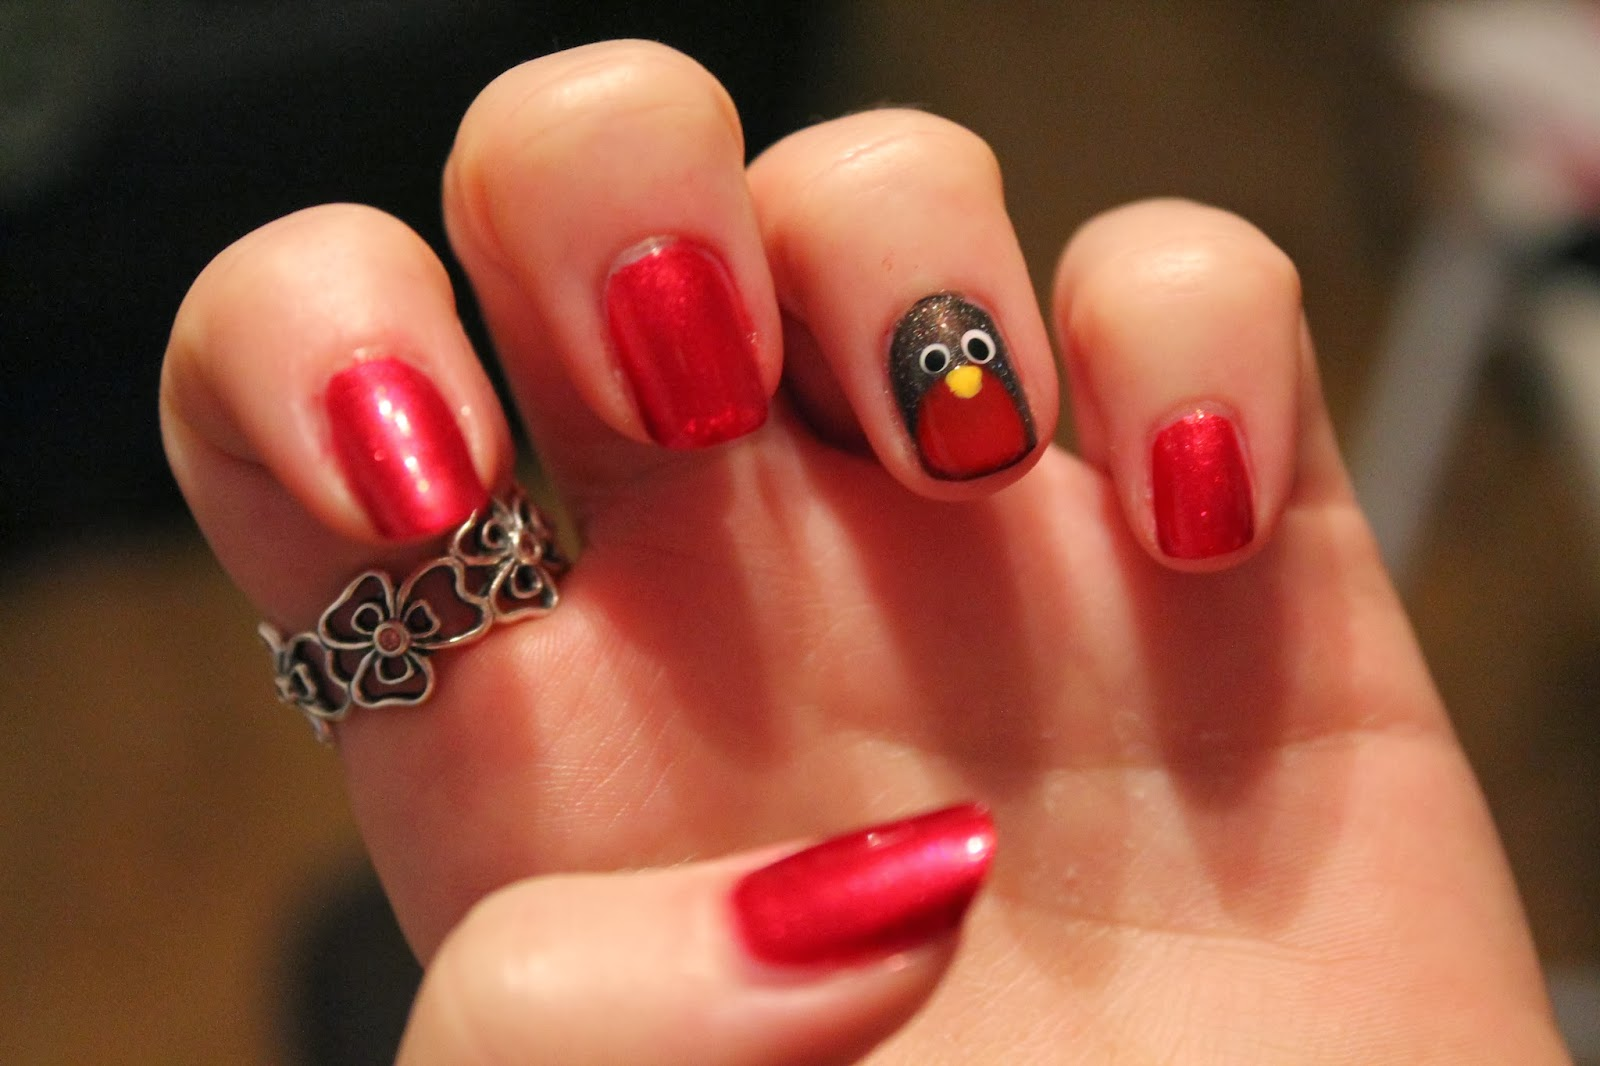 Doing my friends nails robin nail art gingerbread smiles christmas nail art red robin prinsesfo Gallery